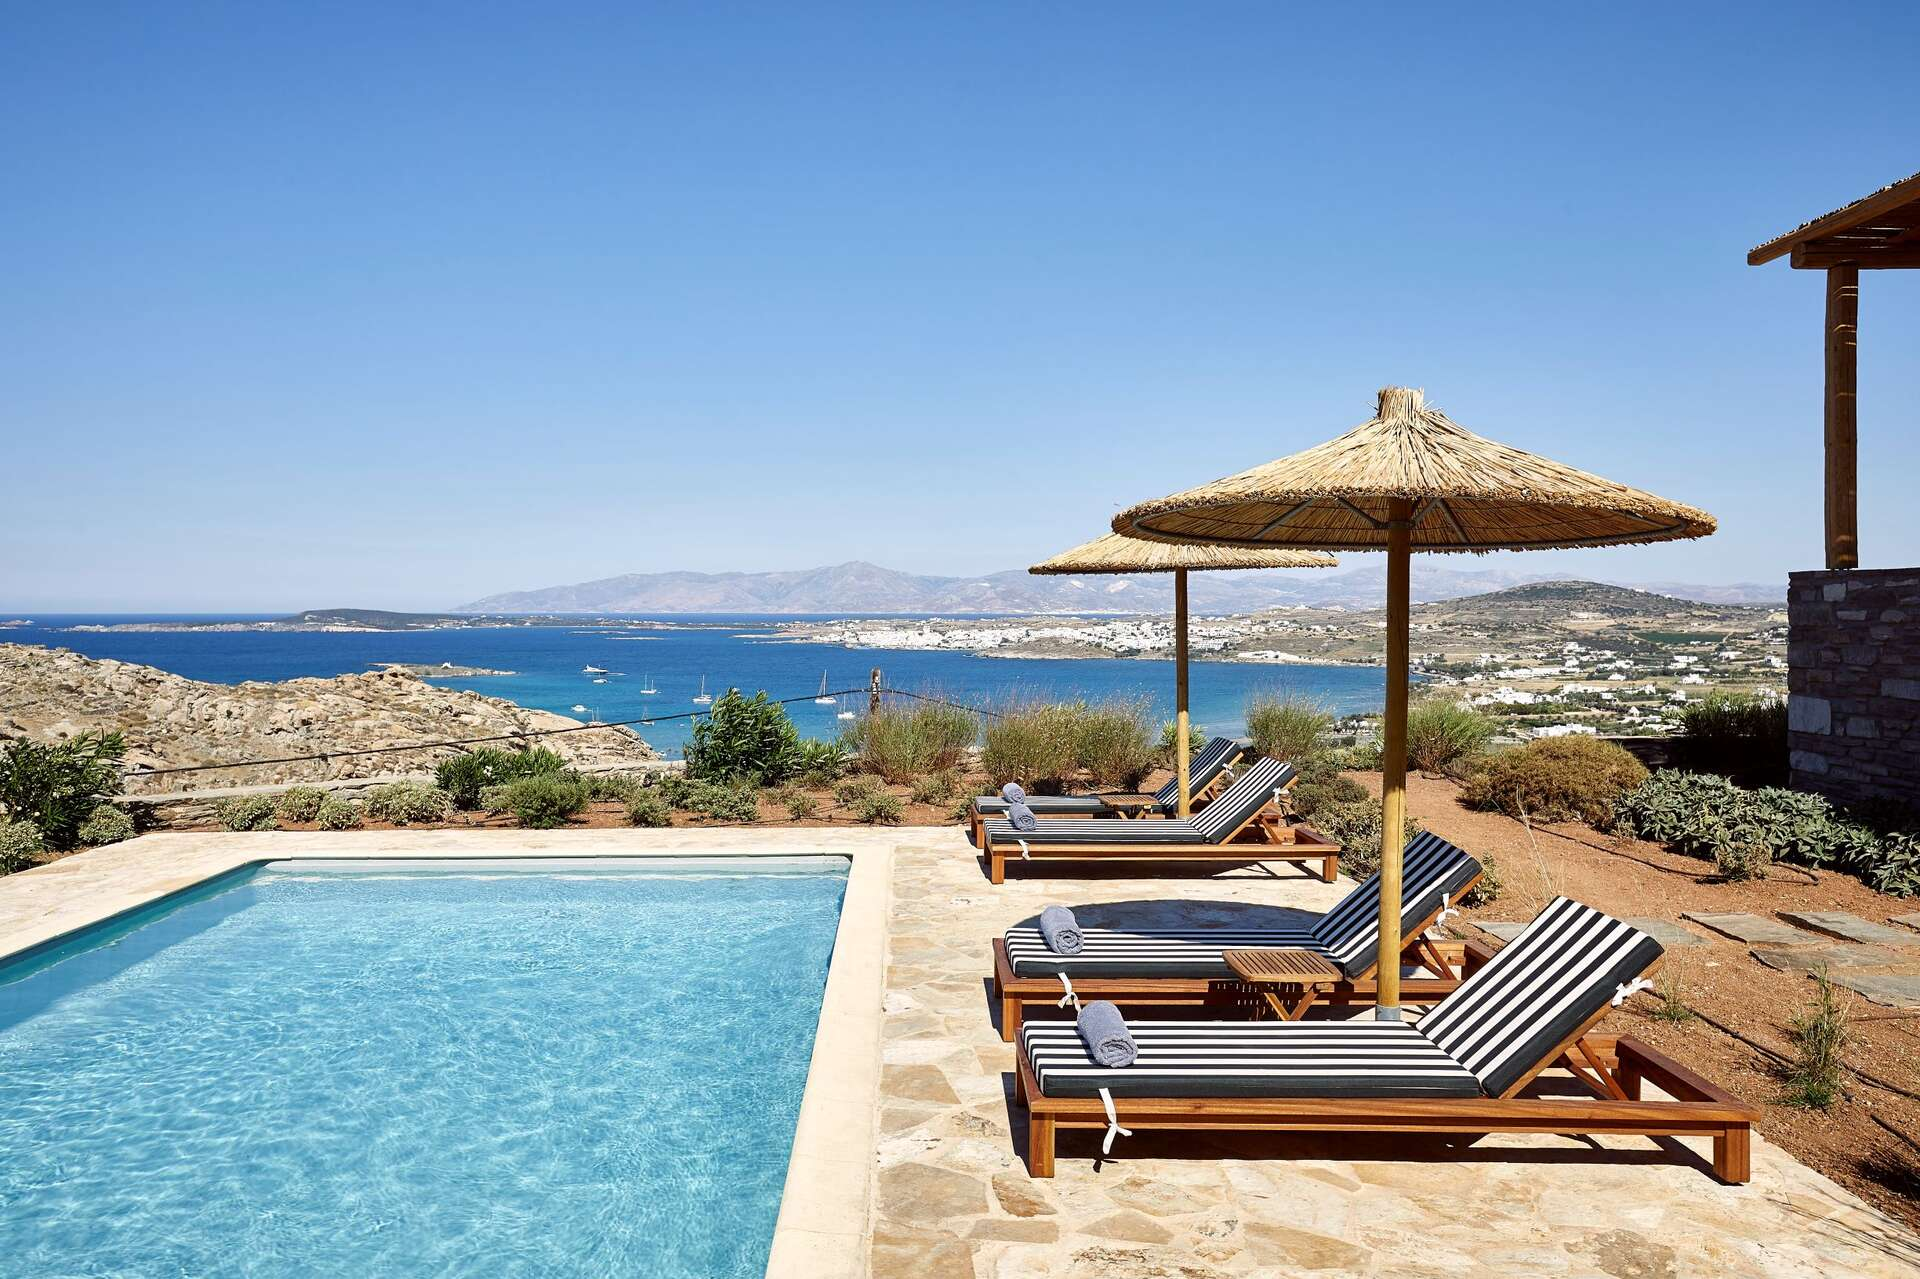 Luxury vacation rentals europe - Greece - Par os - Kolympithres - Turquoise 2 BDM - Image 1/12